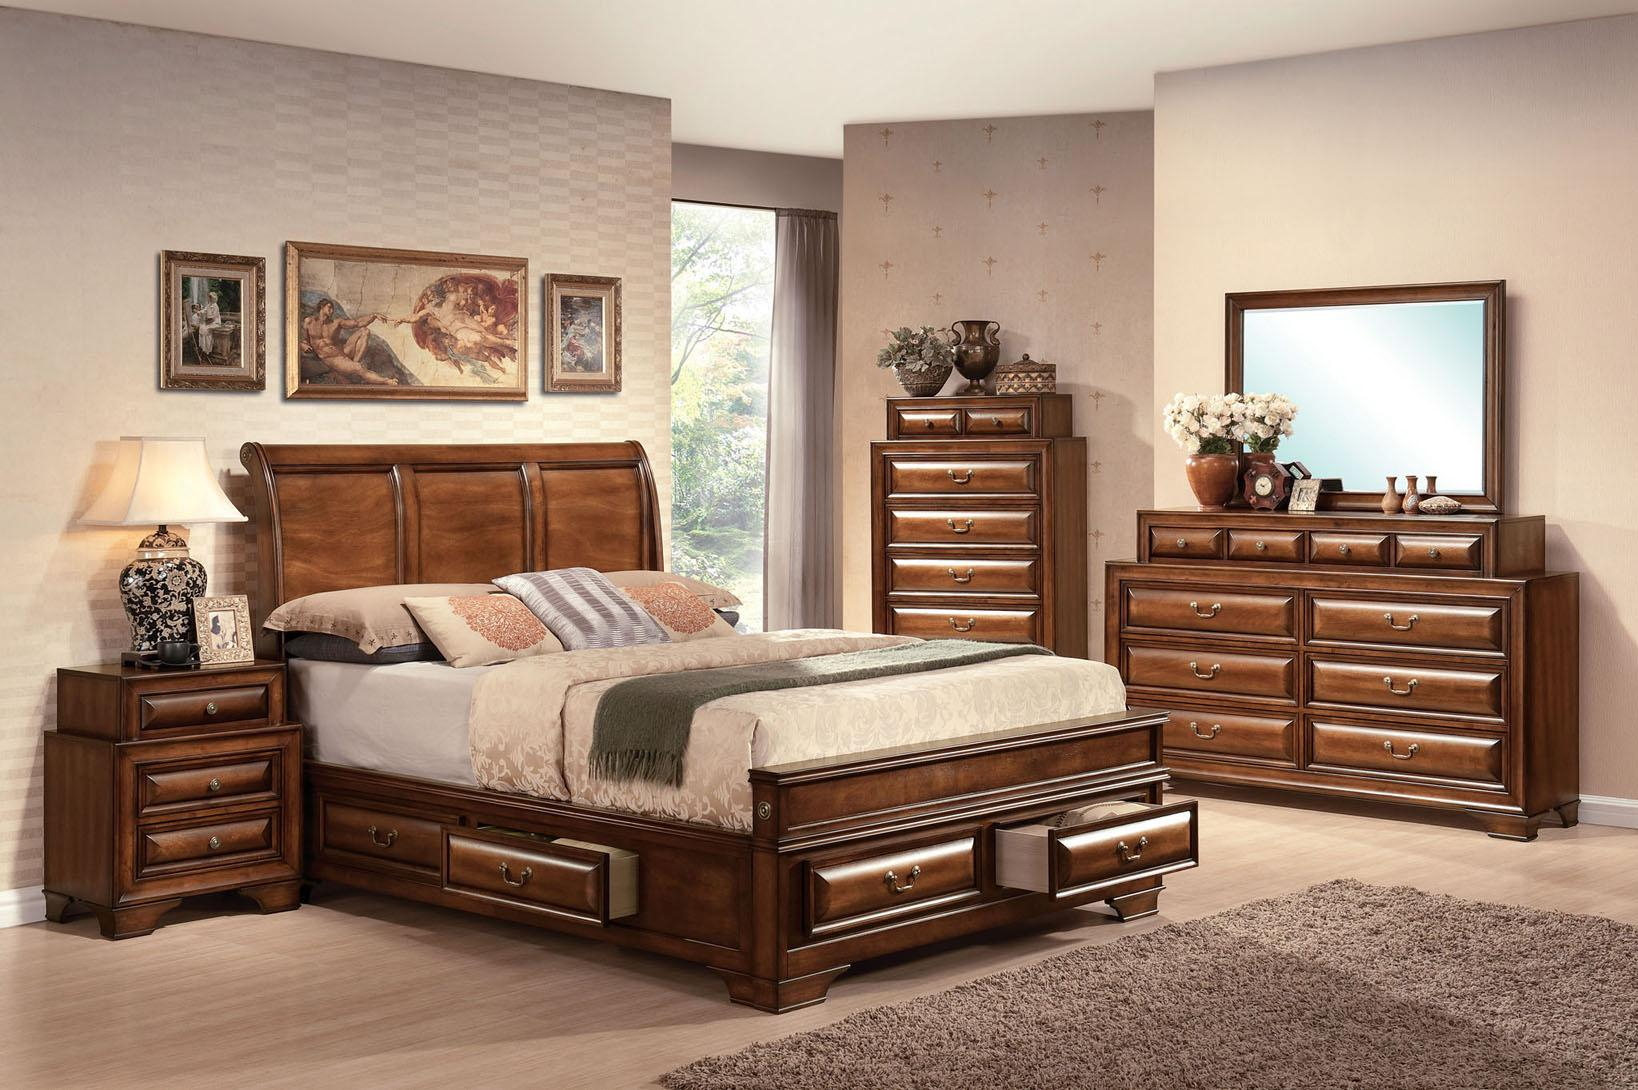 Konane King Bedroom Group by Acme Furniture at Rooms for Less